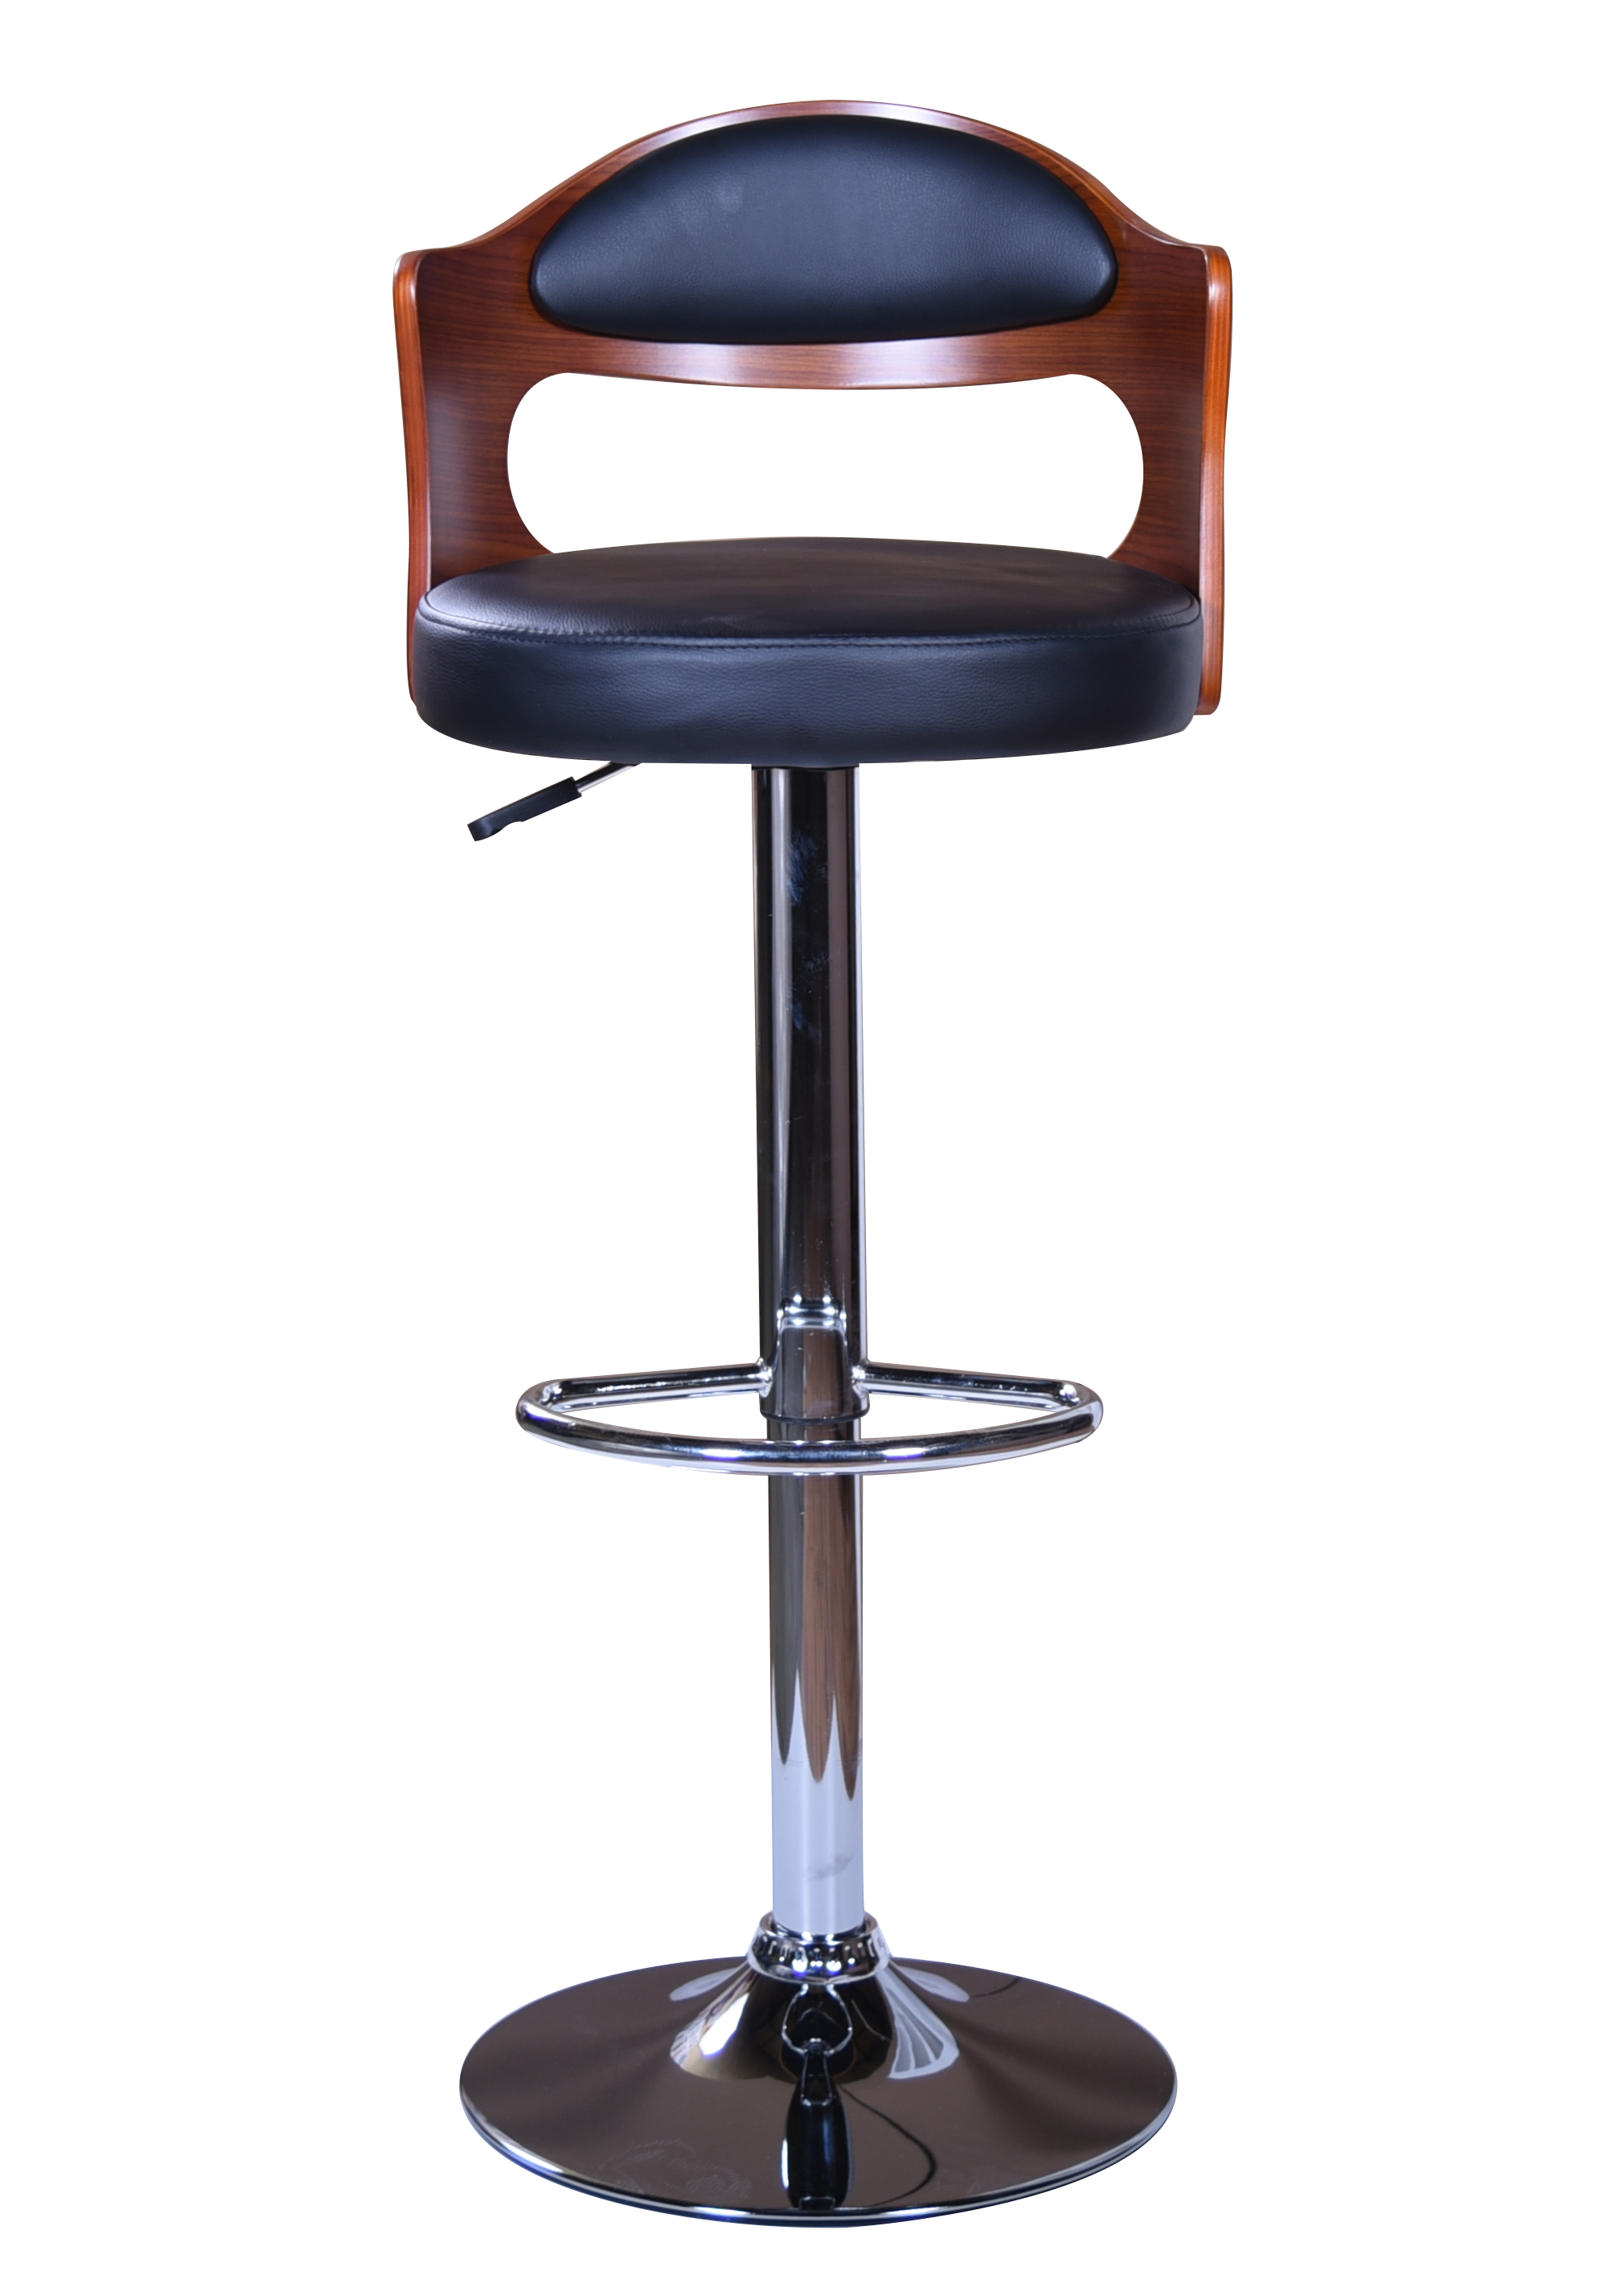 Bar Stools for sale Cheapest on Bar Stools Sameday  : Y 25 Bar Stool front from www.discountdecor.co.za size 1990 x 2855 jpeg 788kB